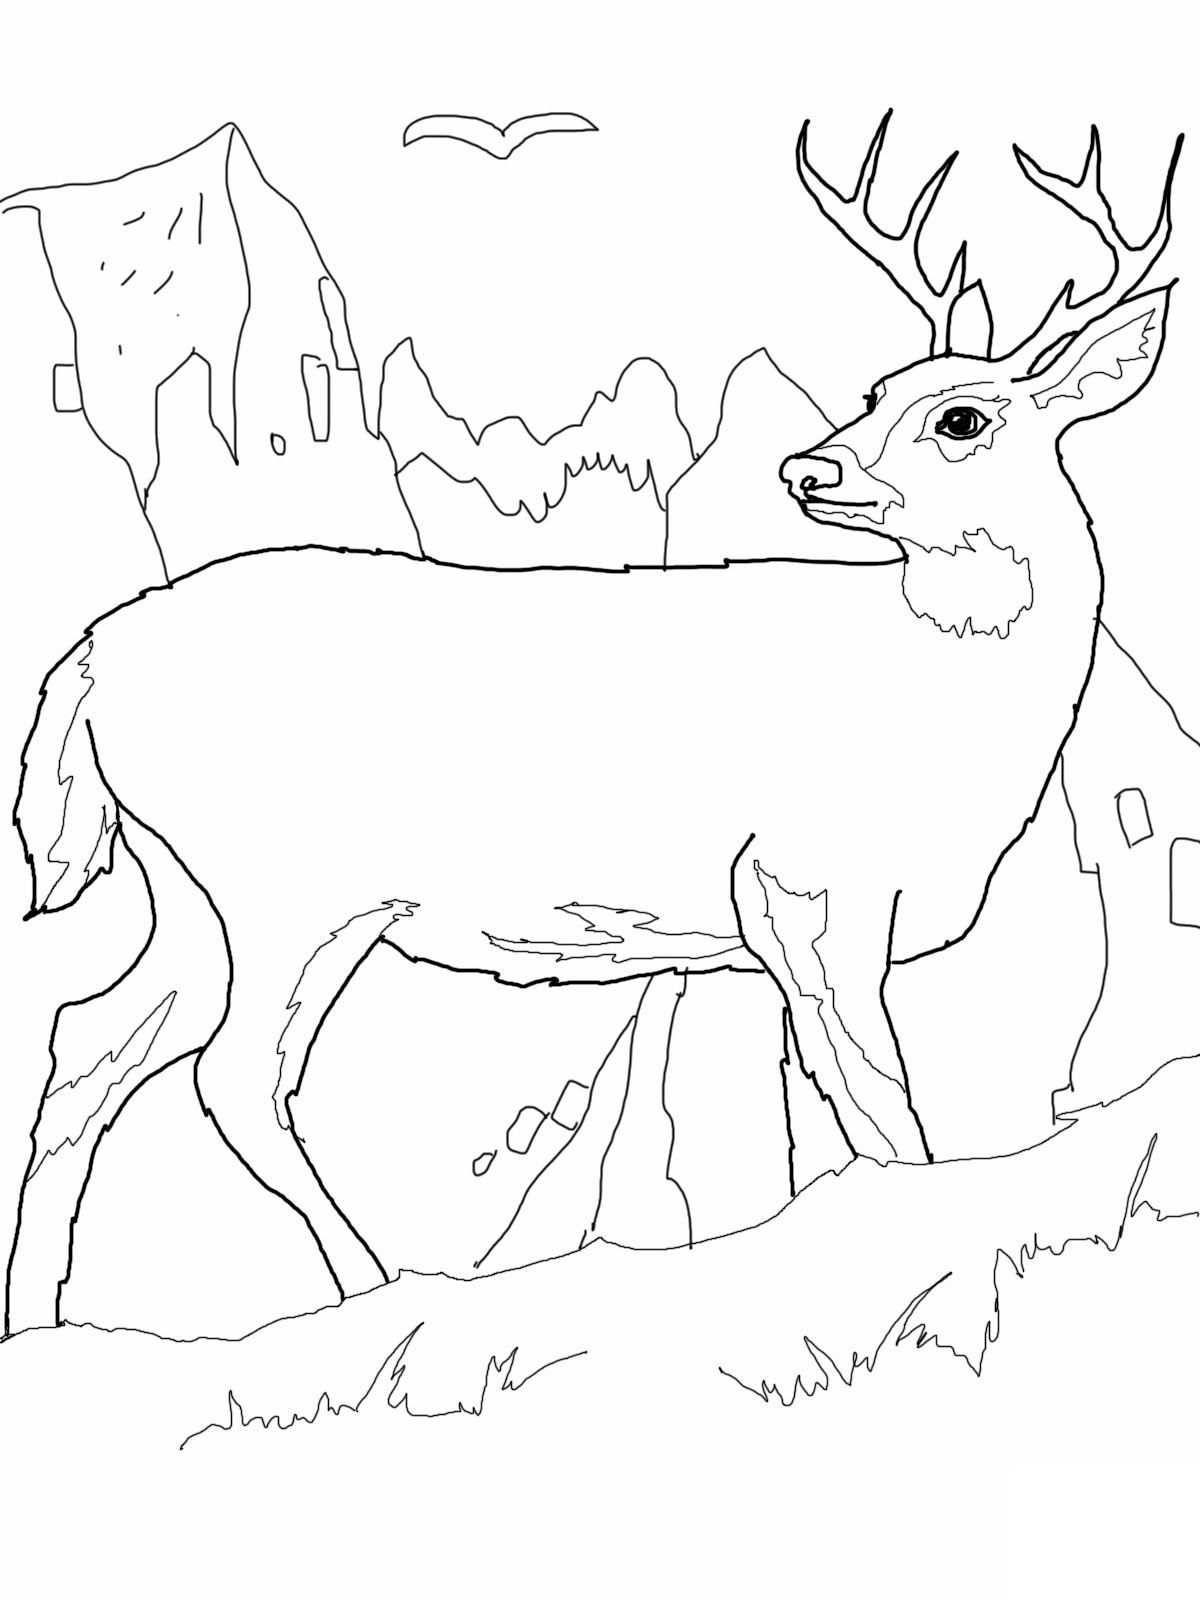 Free Printable Deer Coloring Pages For Kids Deer Coloring Pages Horse Coloring Pages Animal Coloring Pages